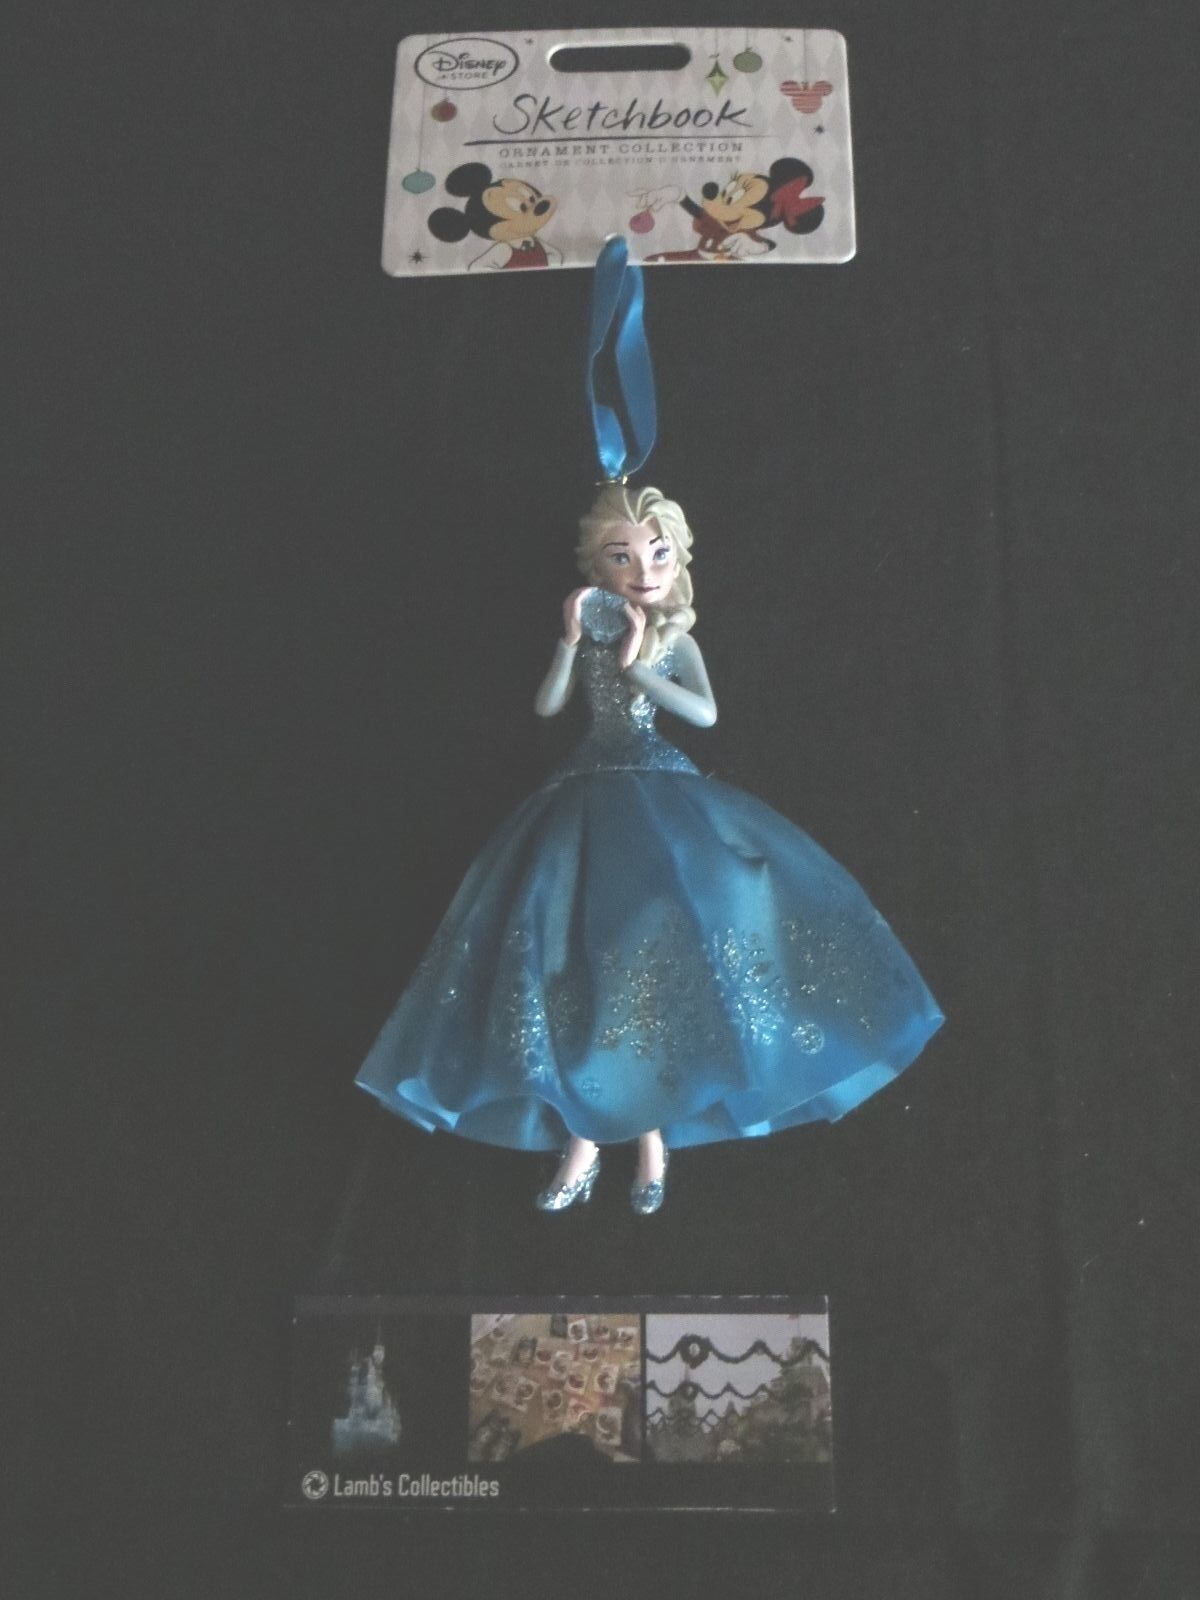 Primary image for Disney Store Authentic Frozen Elsa 2014 Sketchbook Christmas Ornament Figure